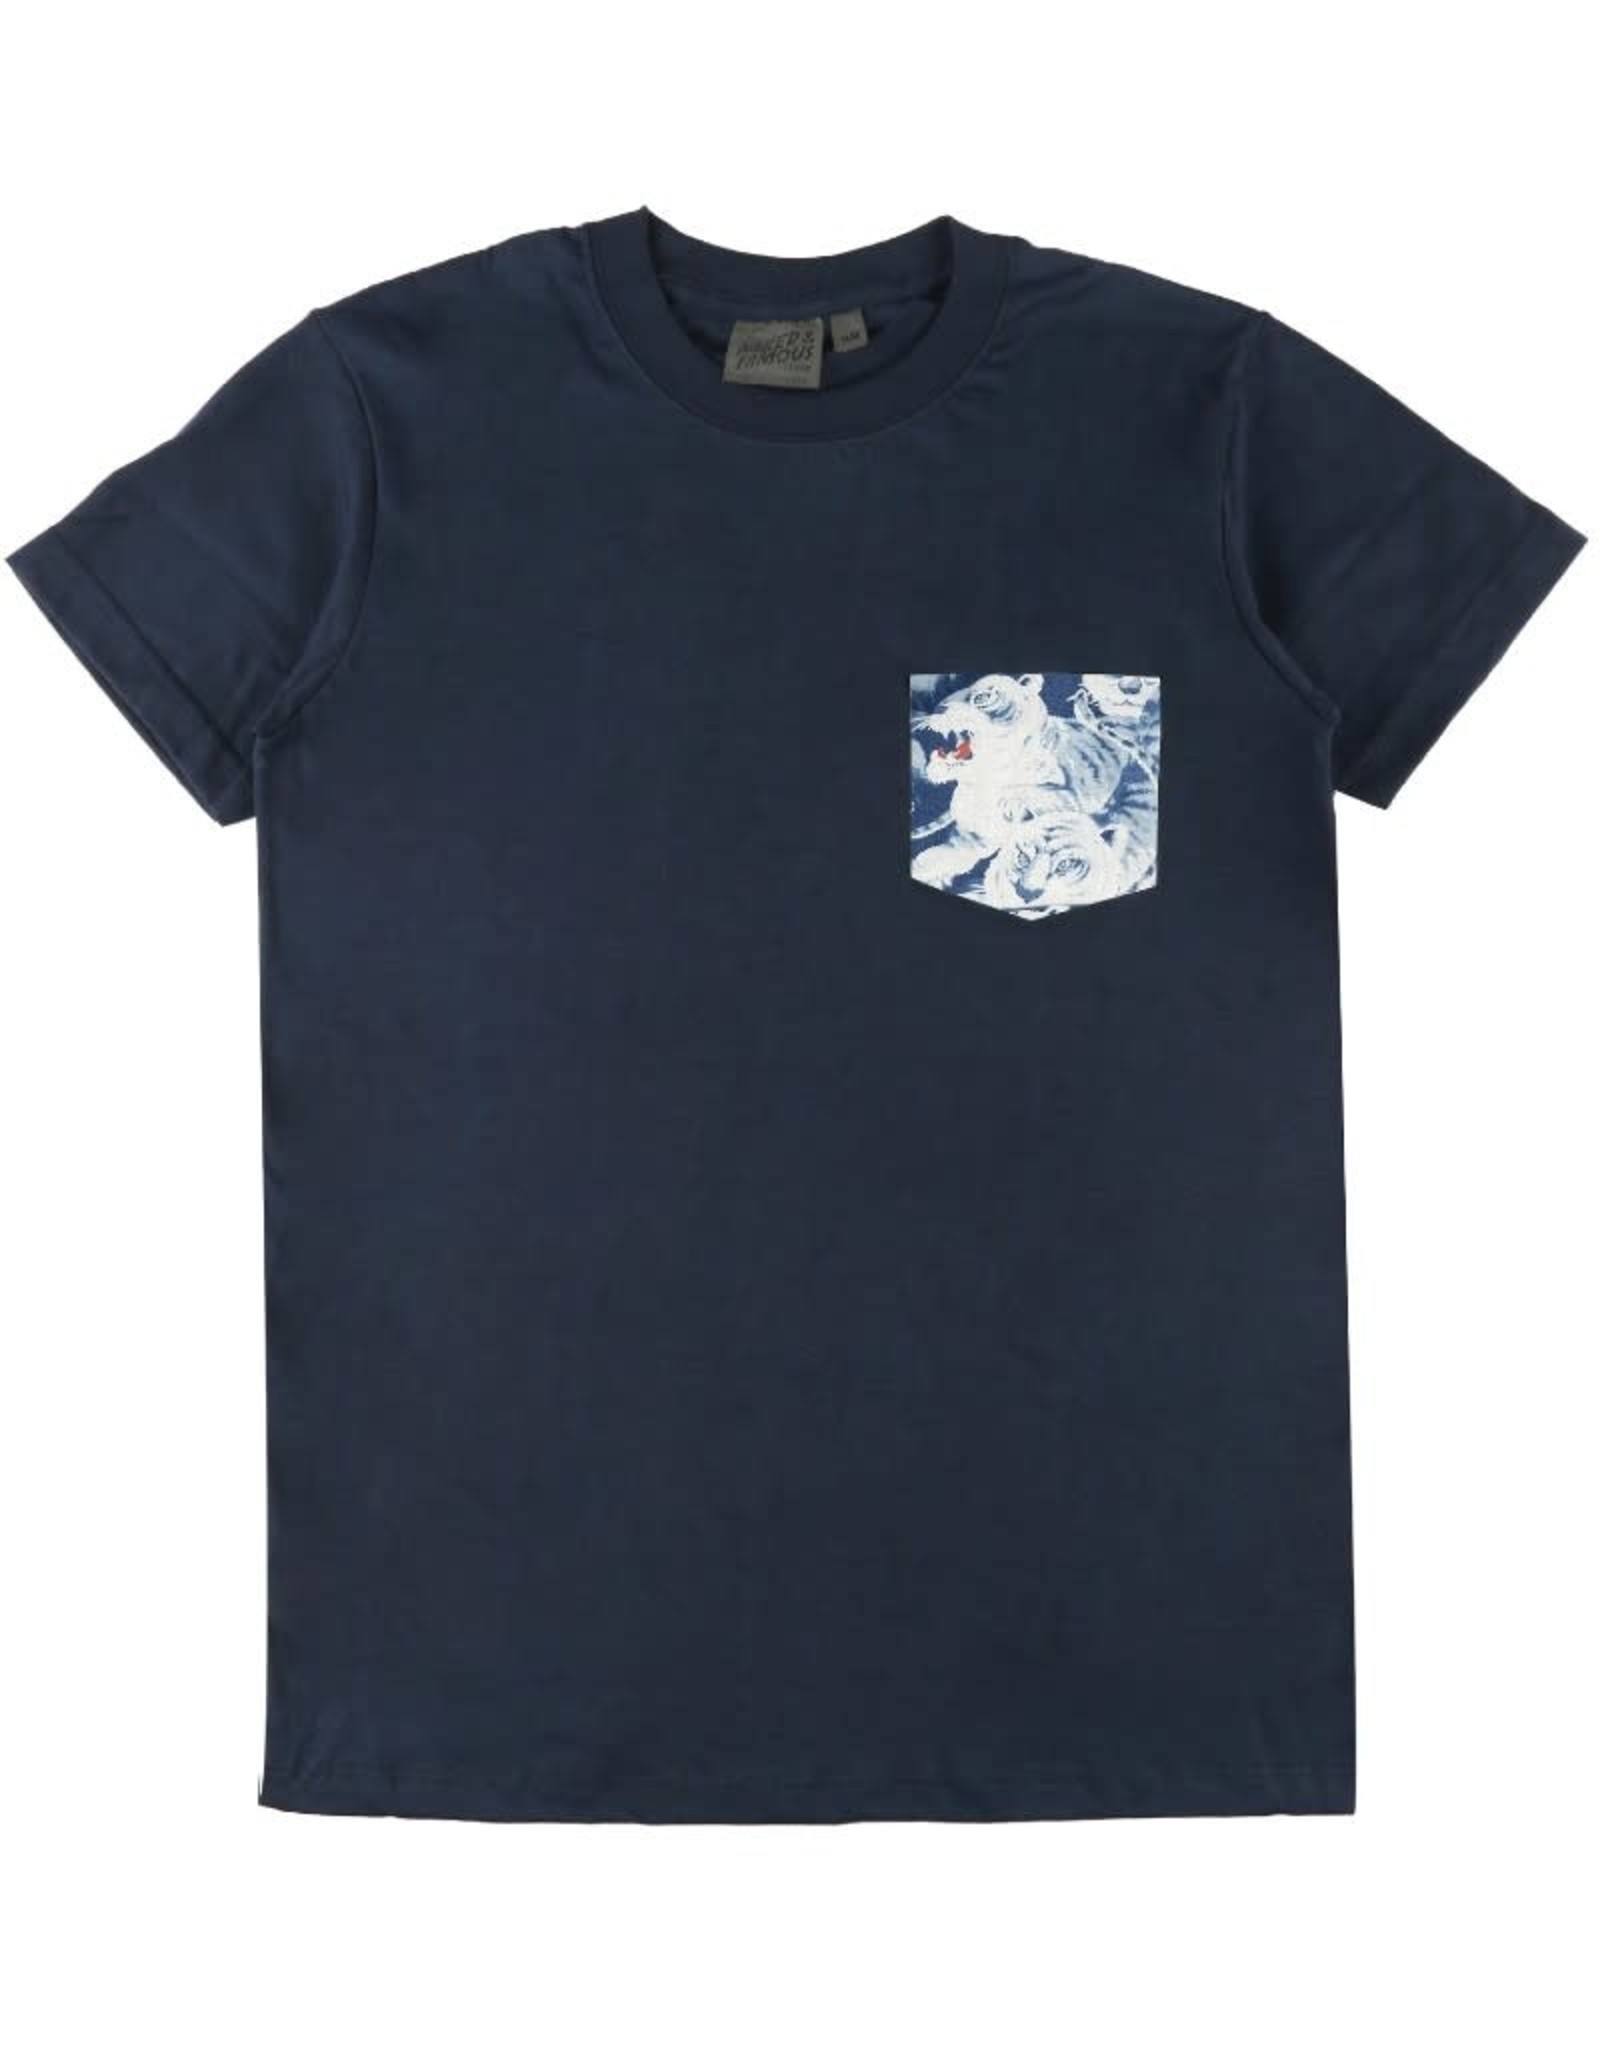 Naked and Famous Pocket Tee PE21 Naked & Famous Navy Indigo Tigers